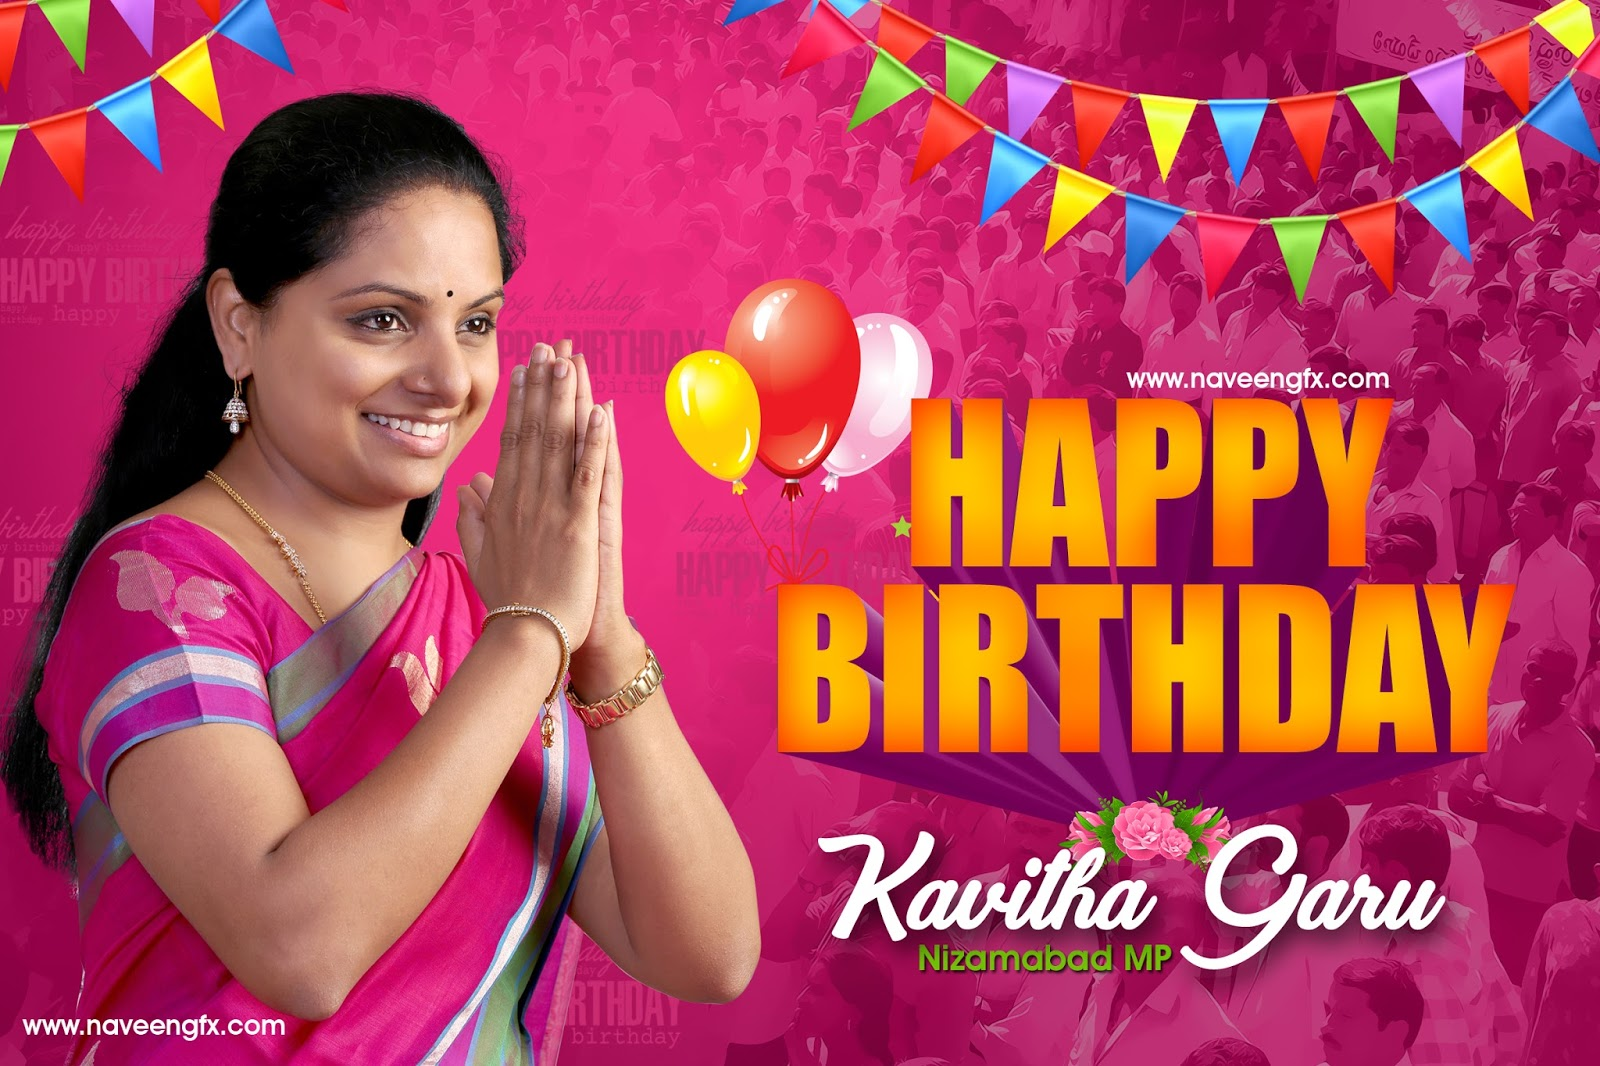 Kalvakuntla Kavitha Birthday Wishes Hd Wallpapers And Posters Naveengfx